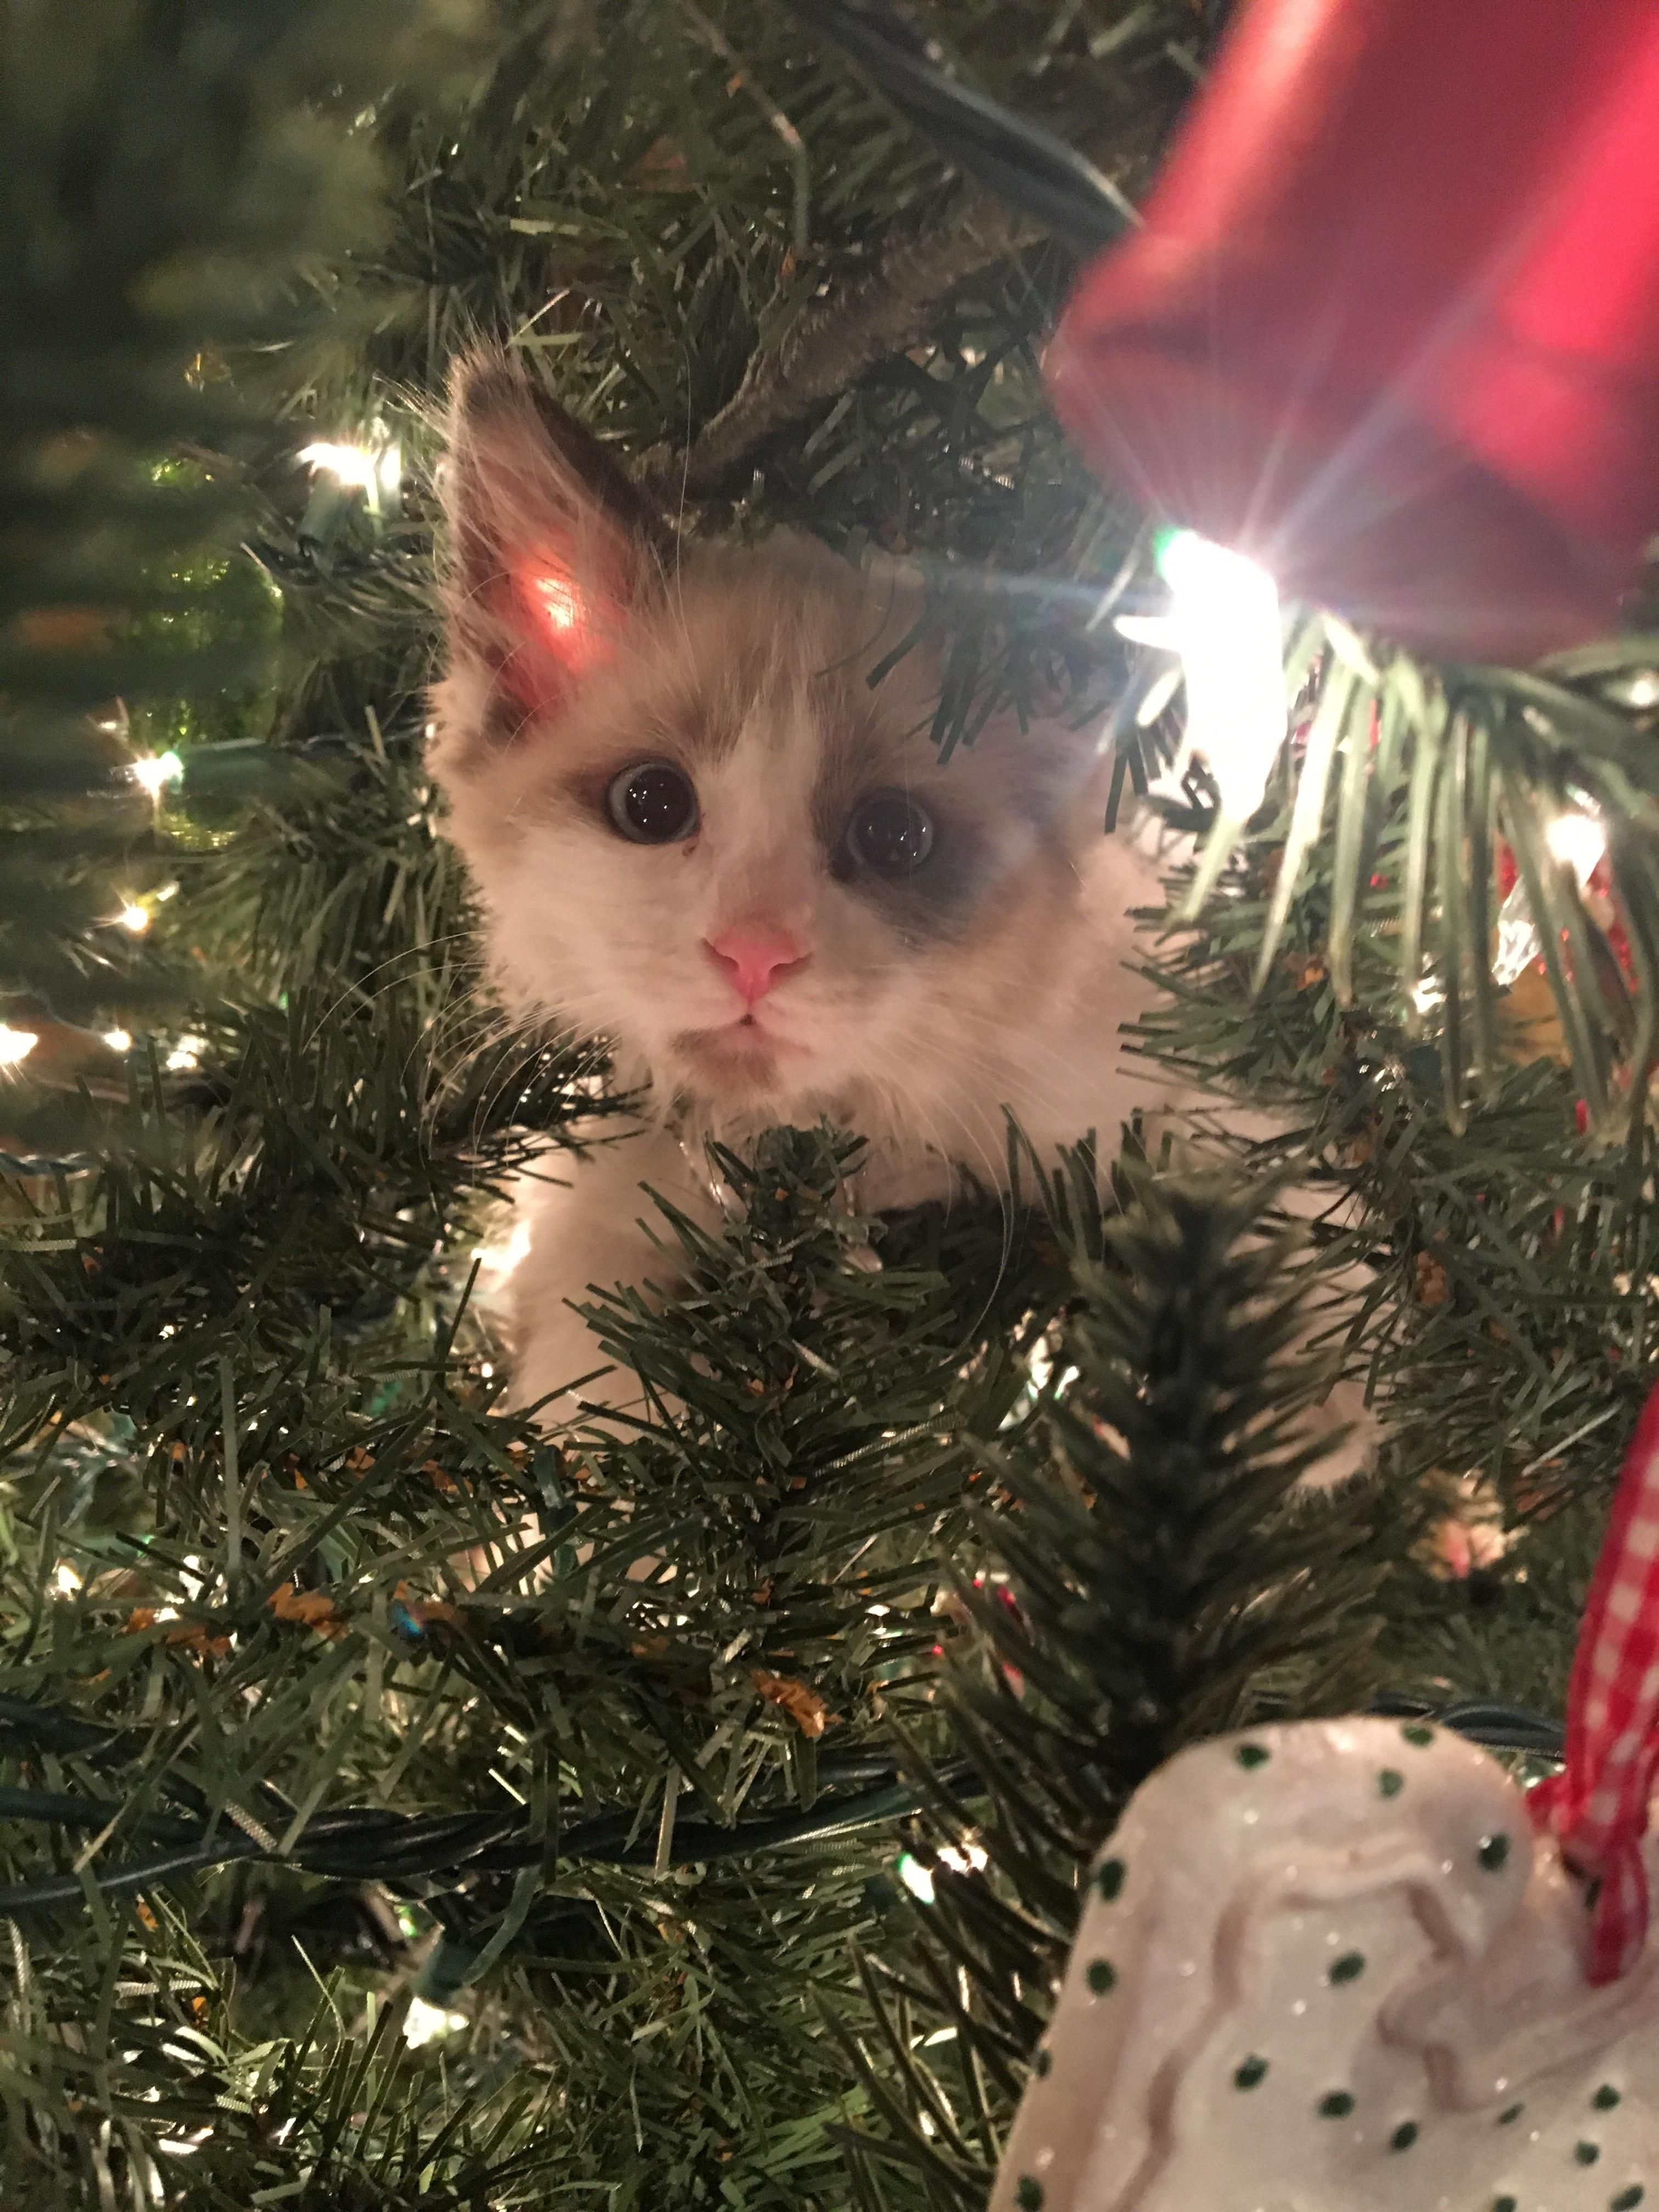 Merry Christmas From Pip She Loves To Hang Out In The Christmas Tree Http Ift Tt 2ieulcz Christmas Cats Cat Having Kittens Cats And Cucumbers